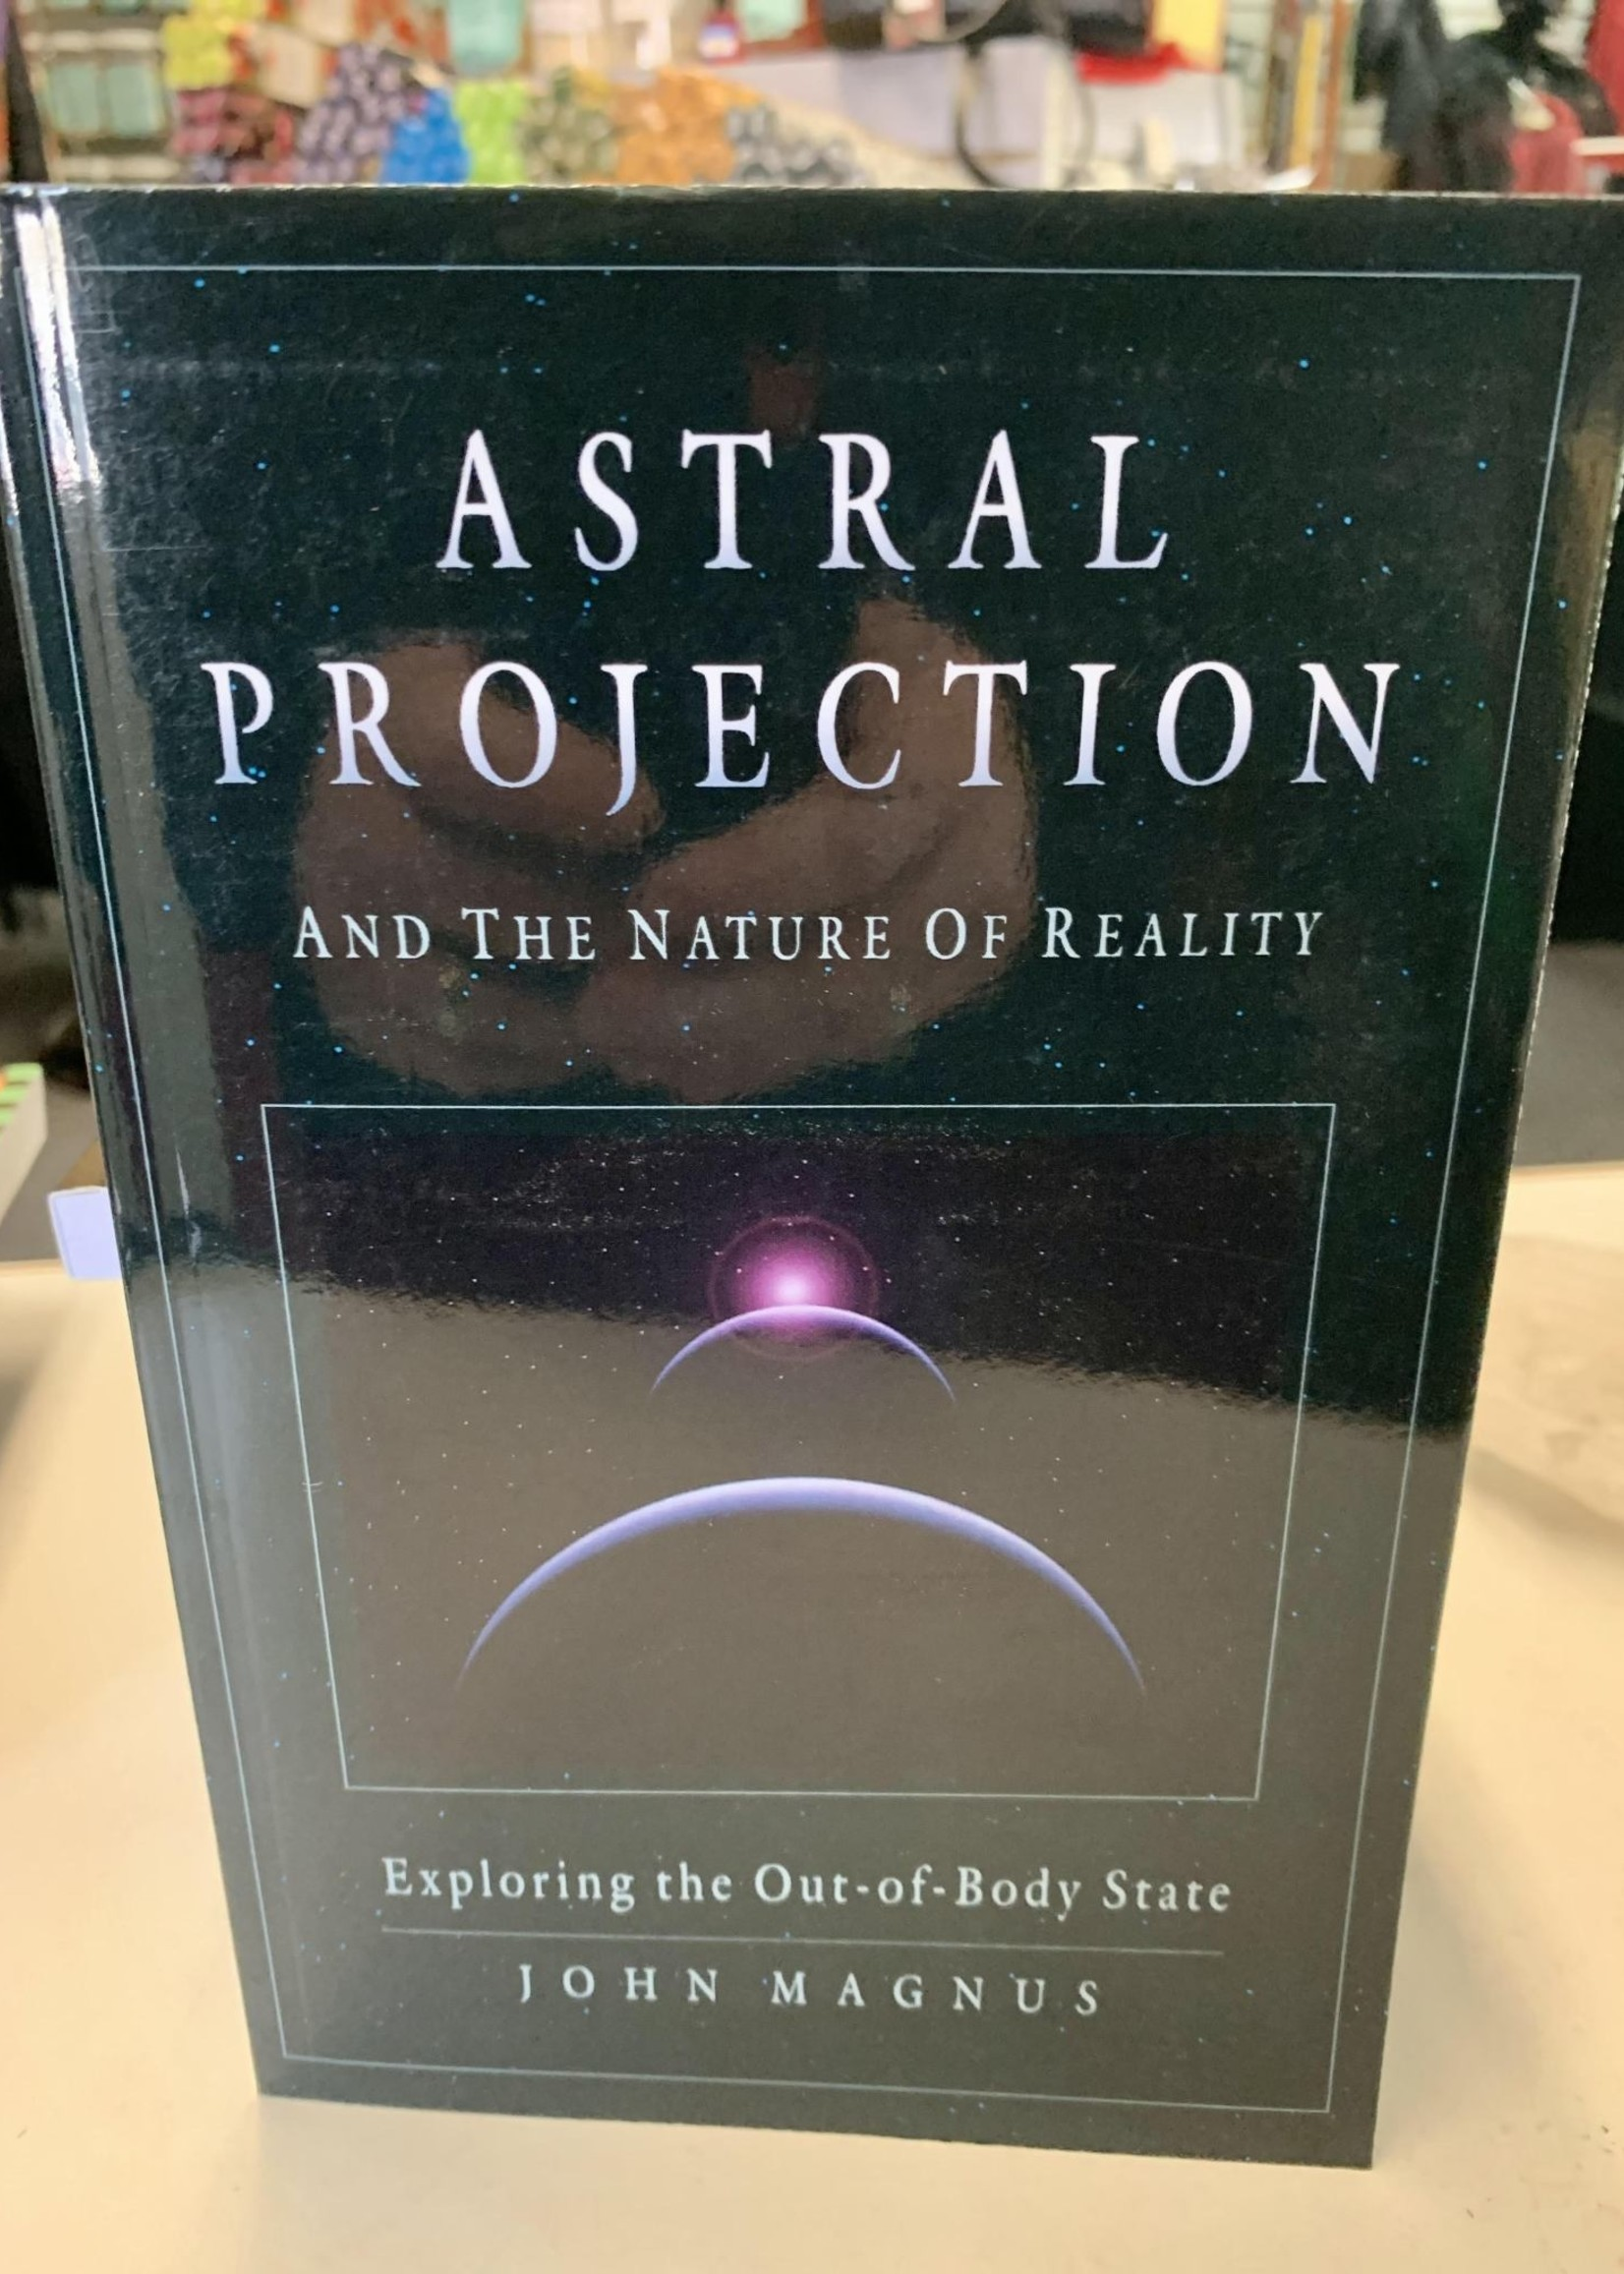 Astral Projection - And the nature of reality - John Magnus Rich text editor